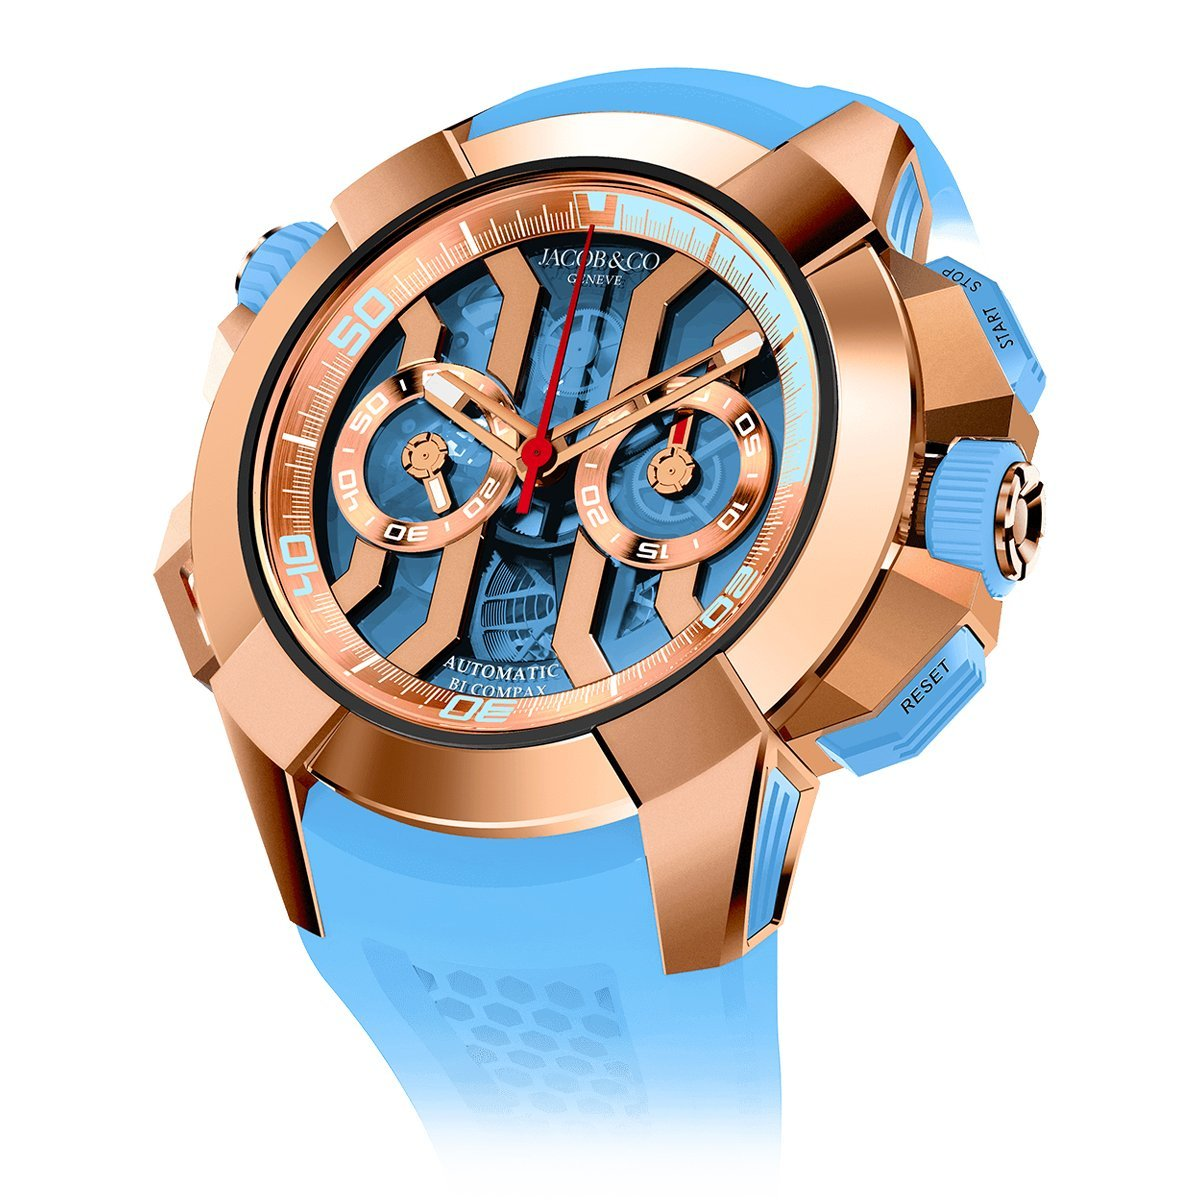 Jacob & Co. Epic X Chronograph Sky Blue - Watches & Crystals